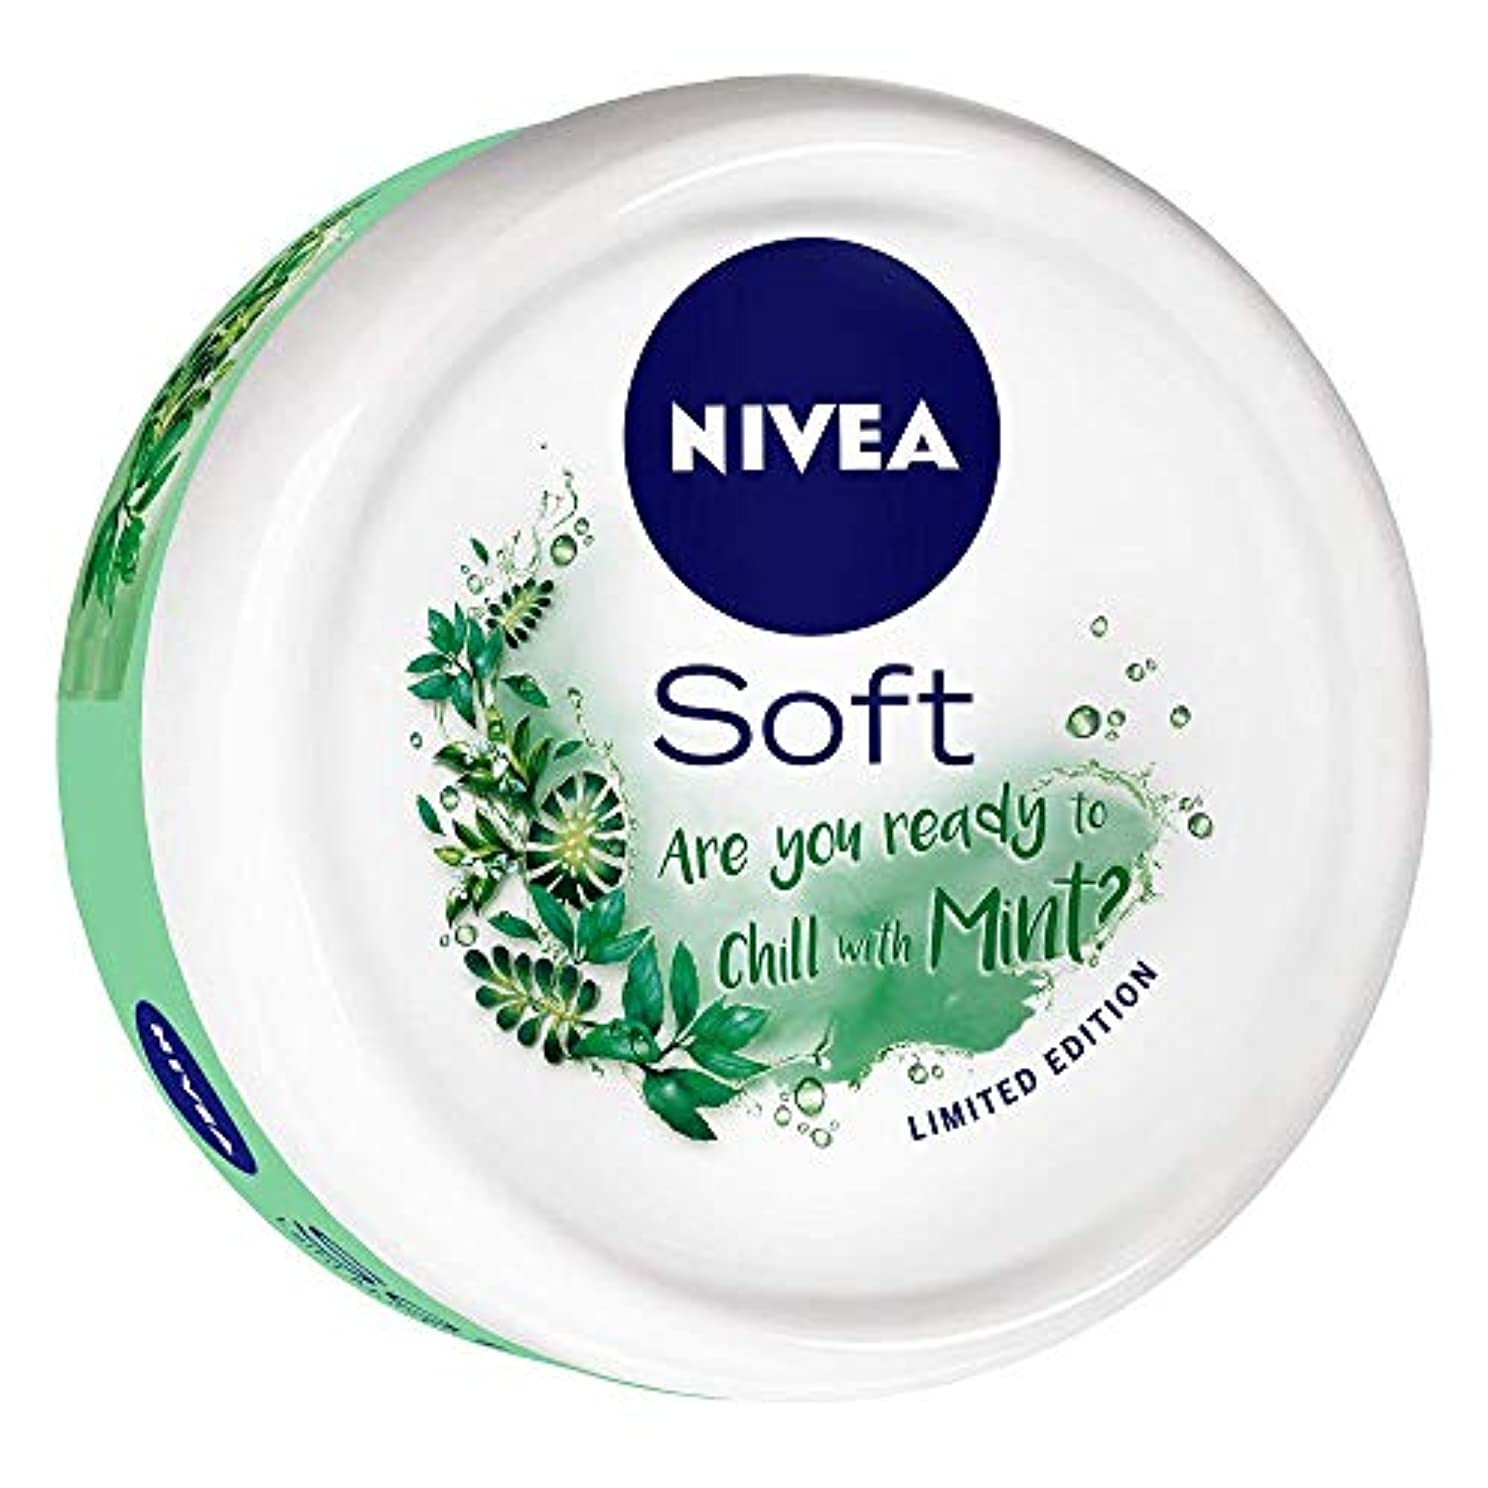 海洋変化する汚れるNIVEA Soft Light Moisturizer Chilled Mint With Vitamin E & Jojoba Oil, 50 ml